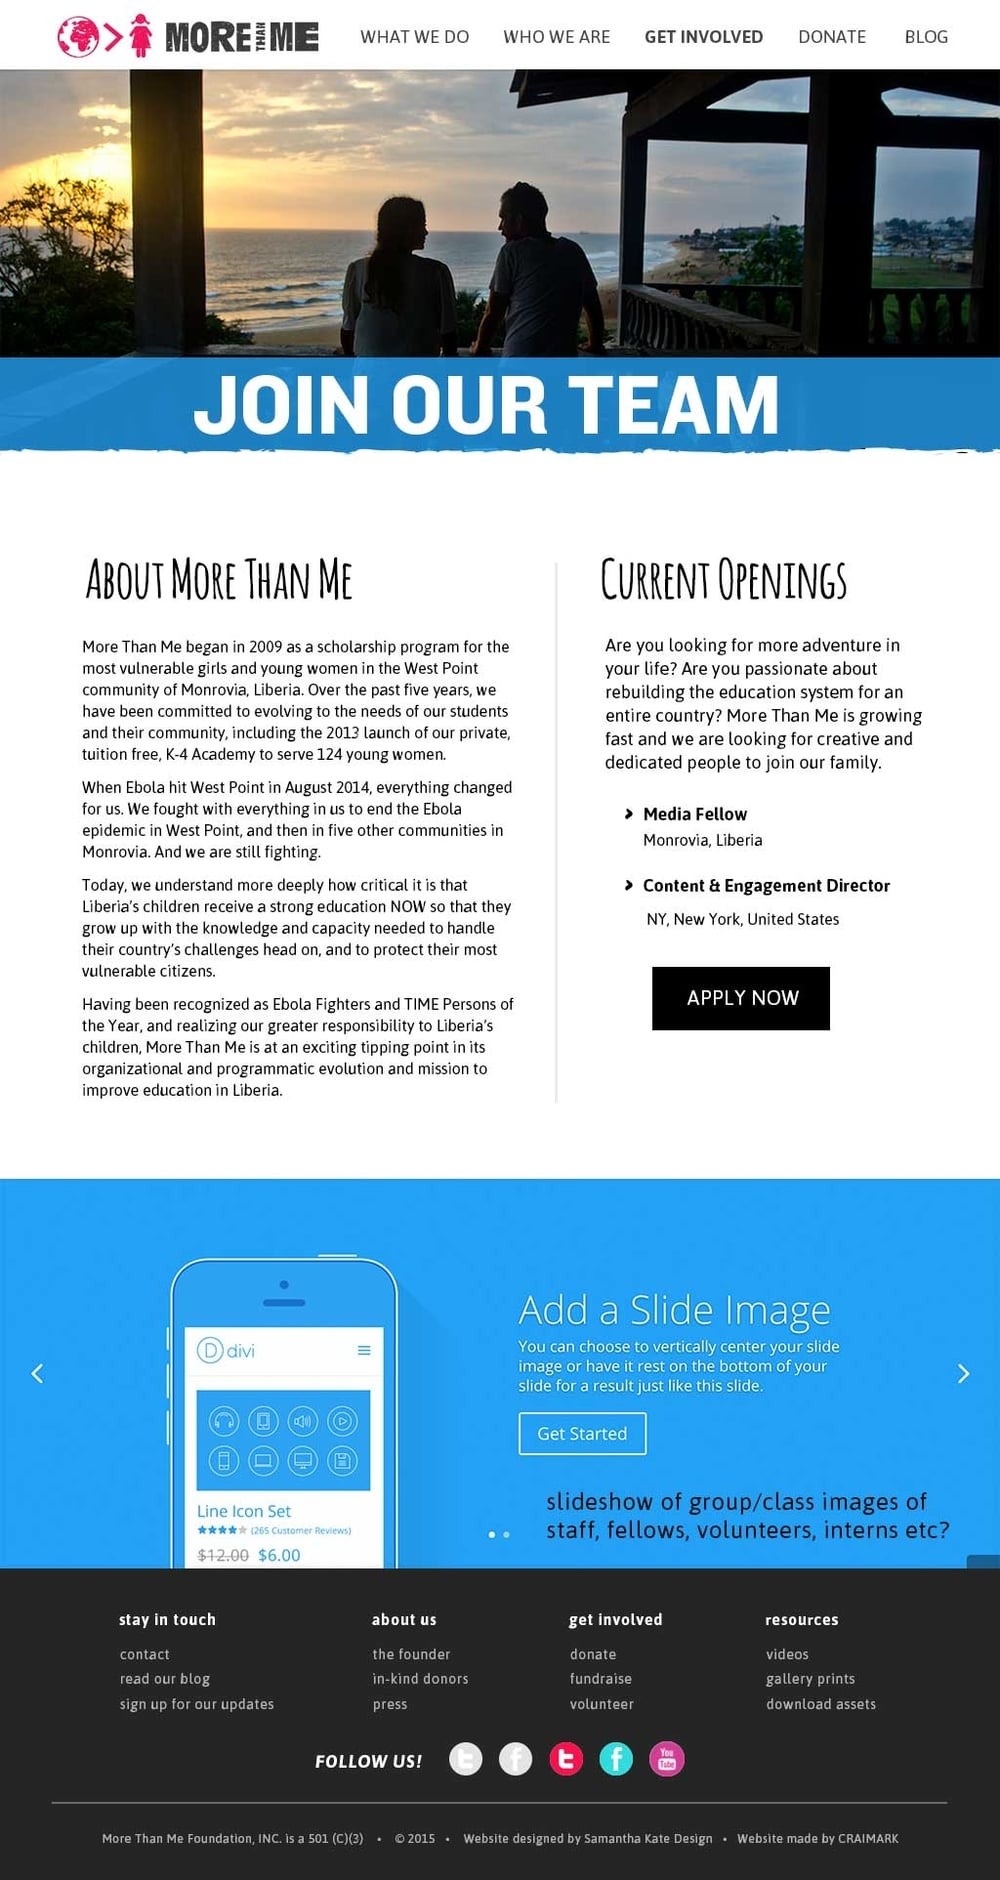 MTM_web-responsive_join-our-team.jpg